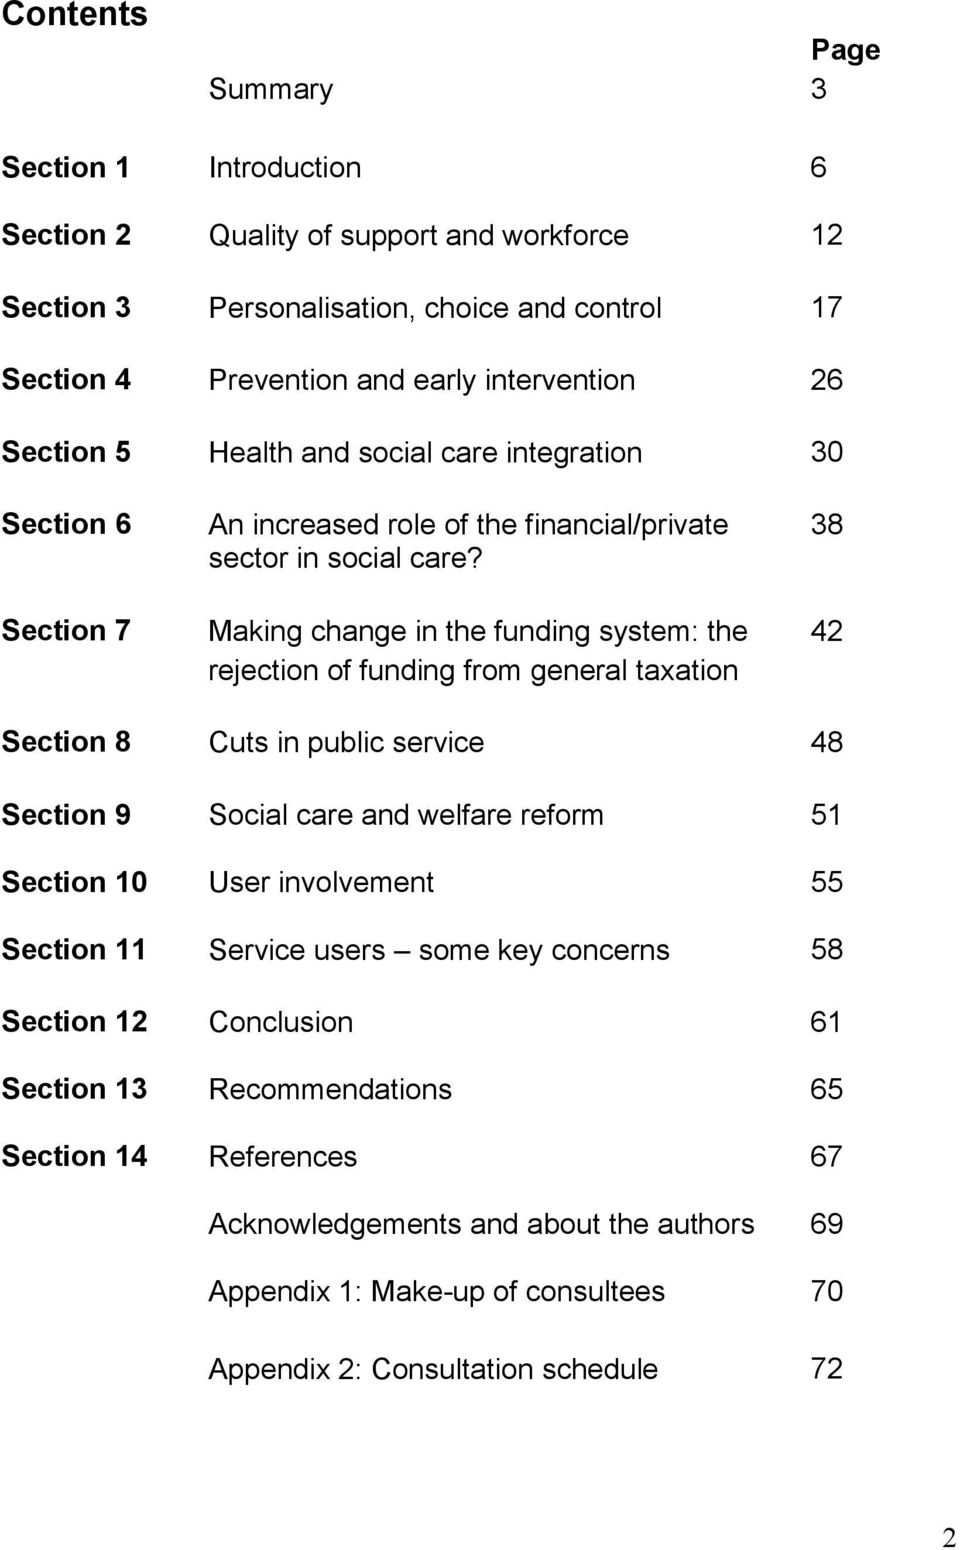 Making change in the funding system: the rejection of funding from general taxation 38 42 Section 8 Cuts in public service 48 Section 9 Social care and welfare reform 51 Section 10 User